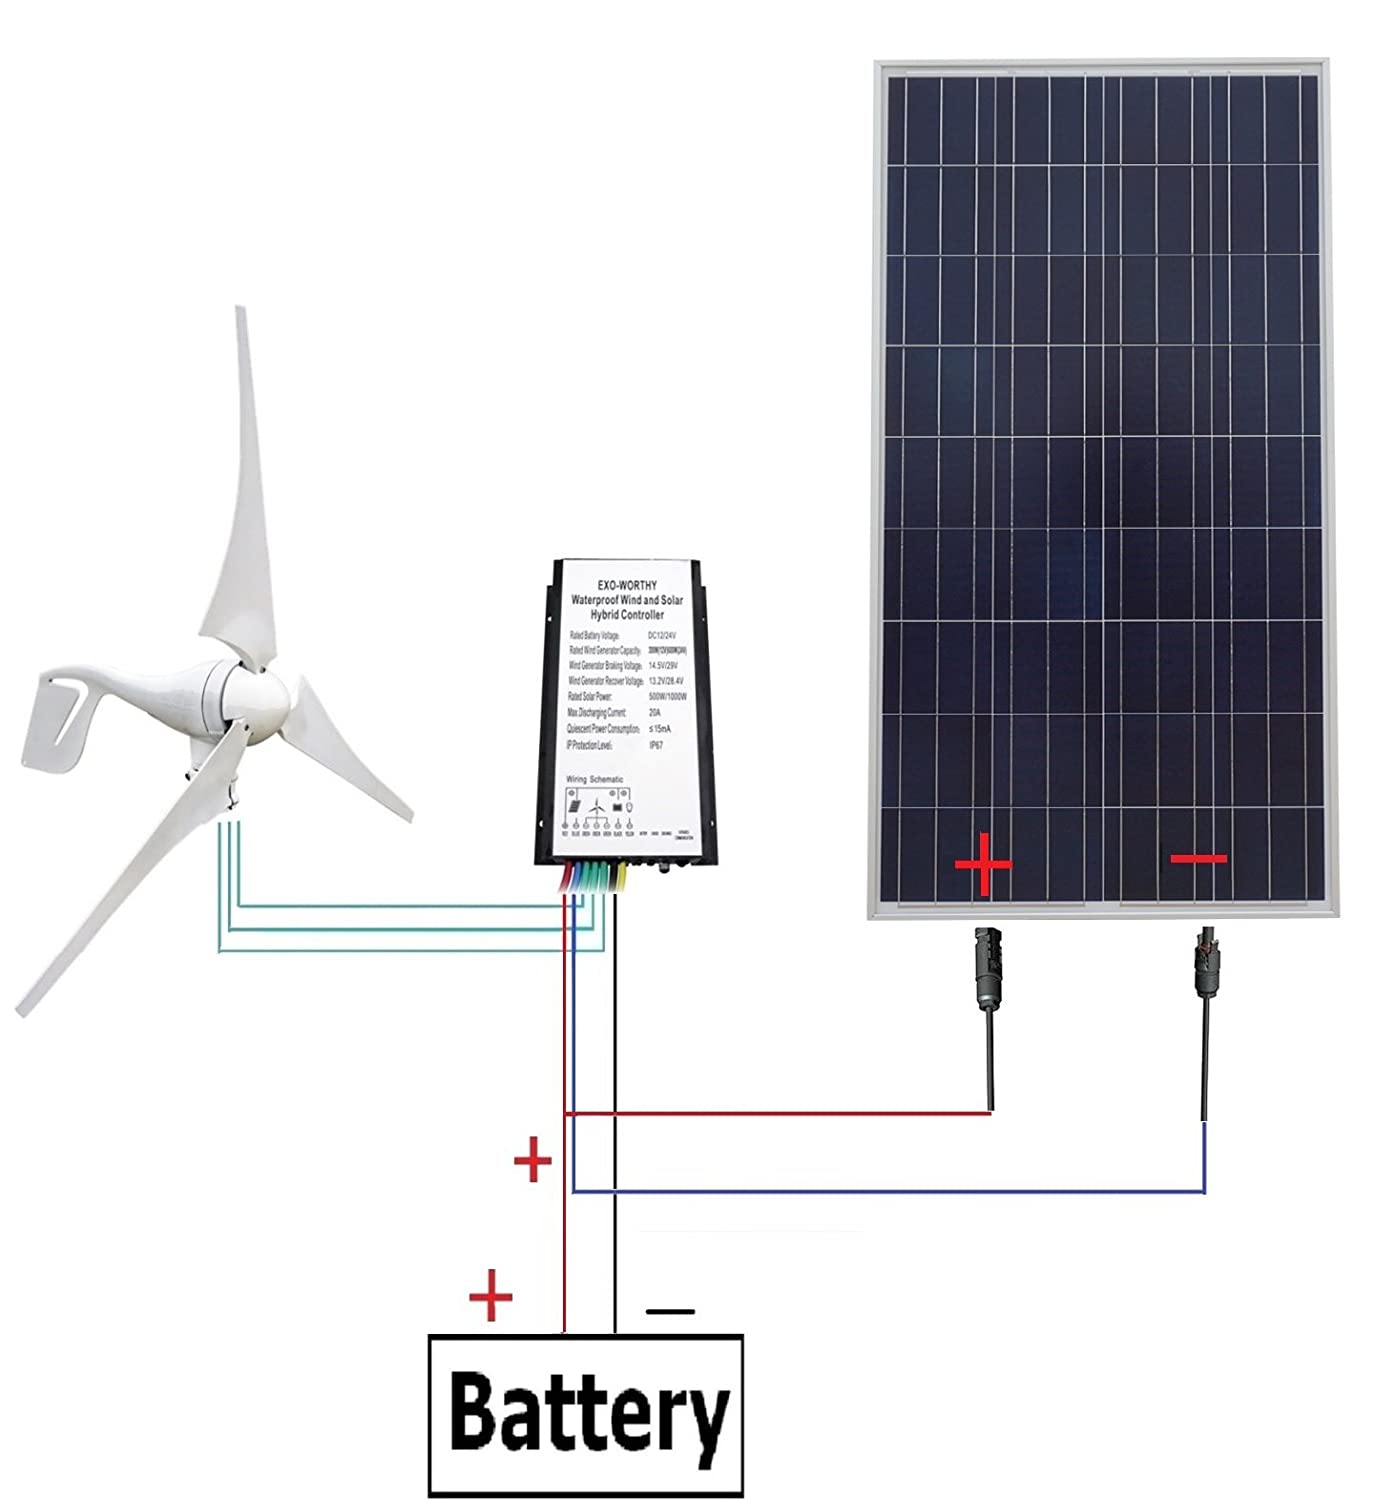 Wiring Solar Panels In Series Vs Parallel Eco Worthy 12 Volts 550 Watts Wind Power 1pc 12v 24v 400 Watt Turbine Generator 150 Polycrystalline Panel